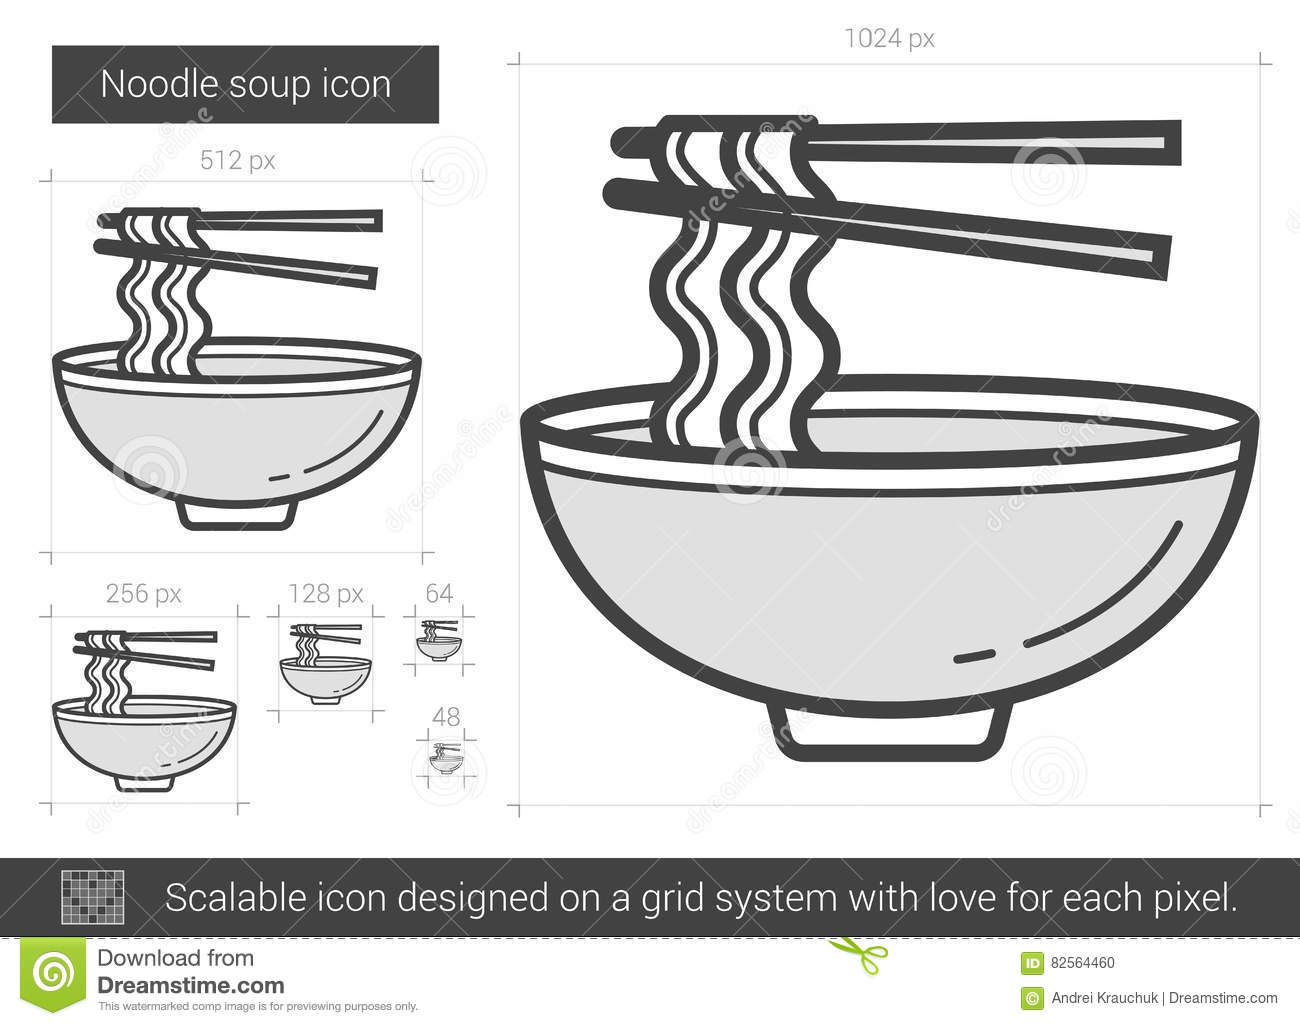 Noodle Soup Line Icon Stock Vector Illustration Of Design 82564460